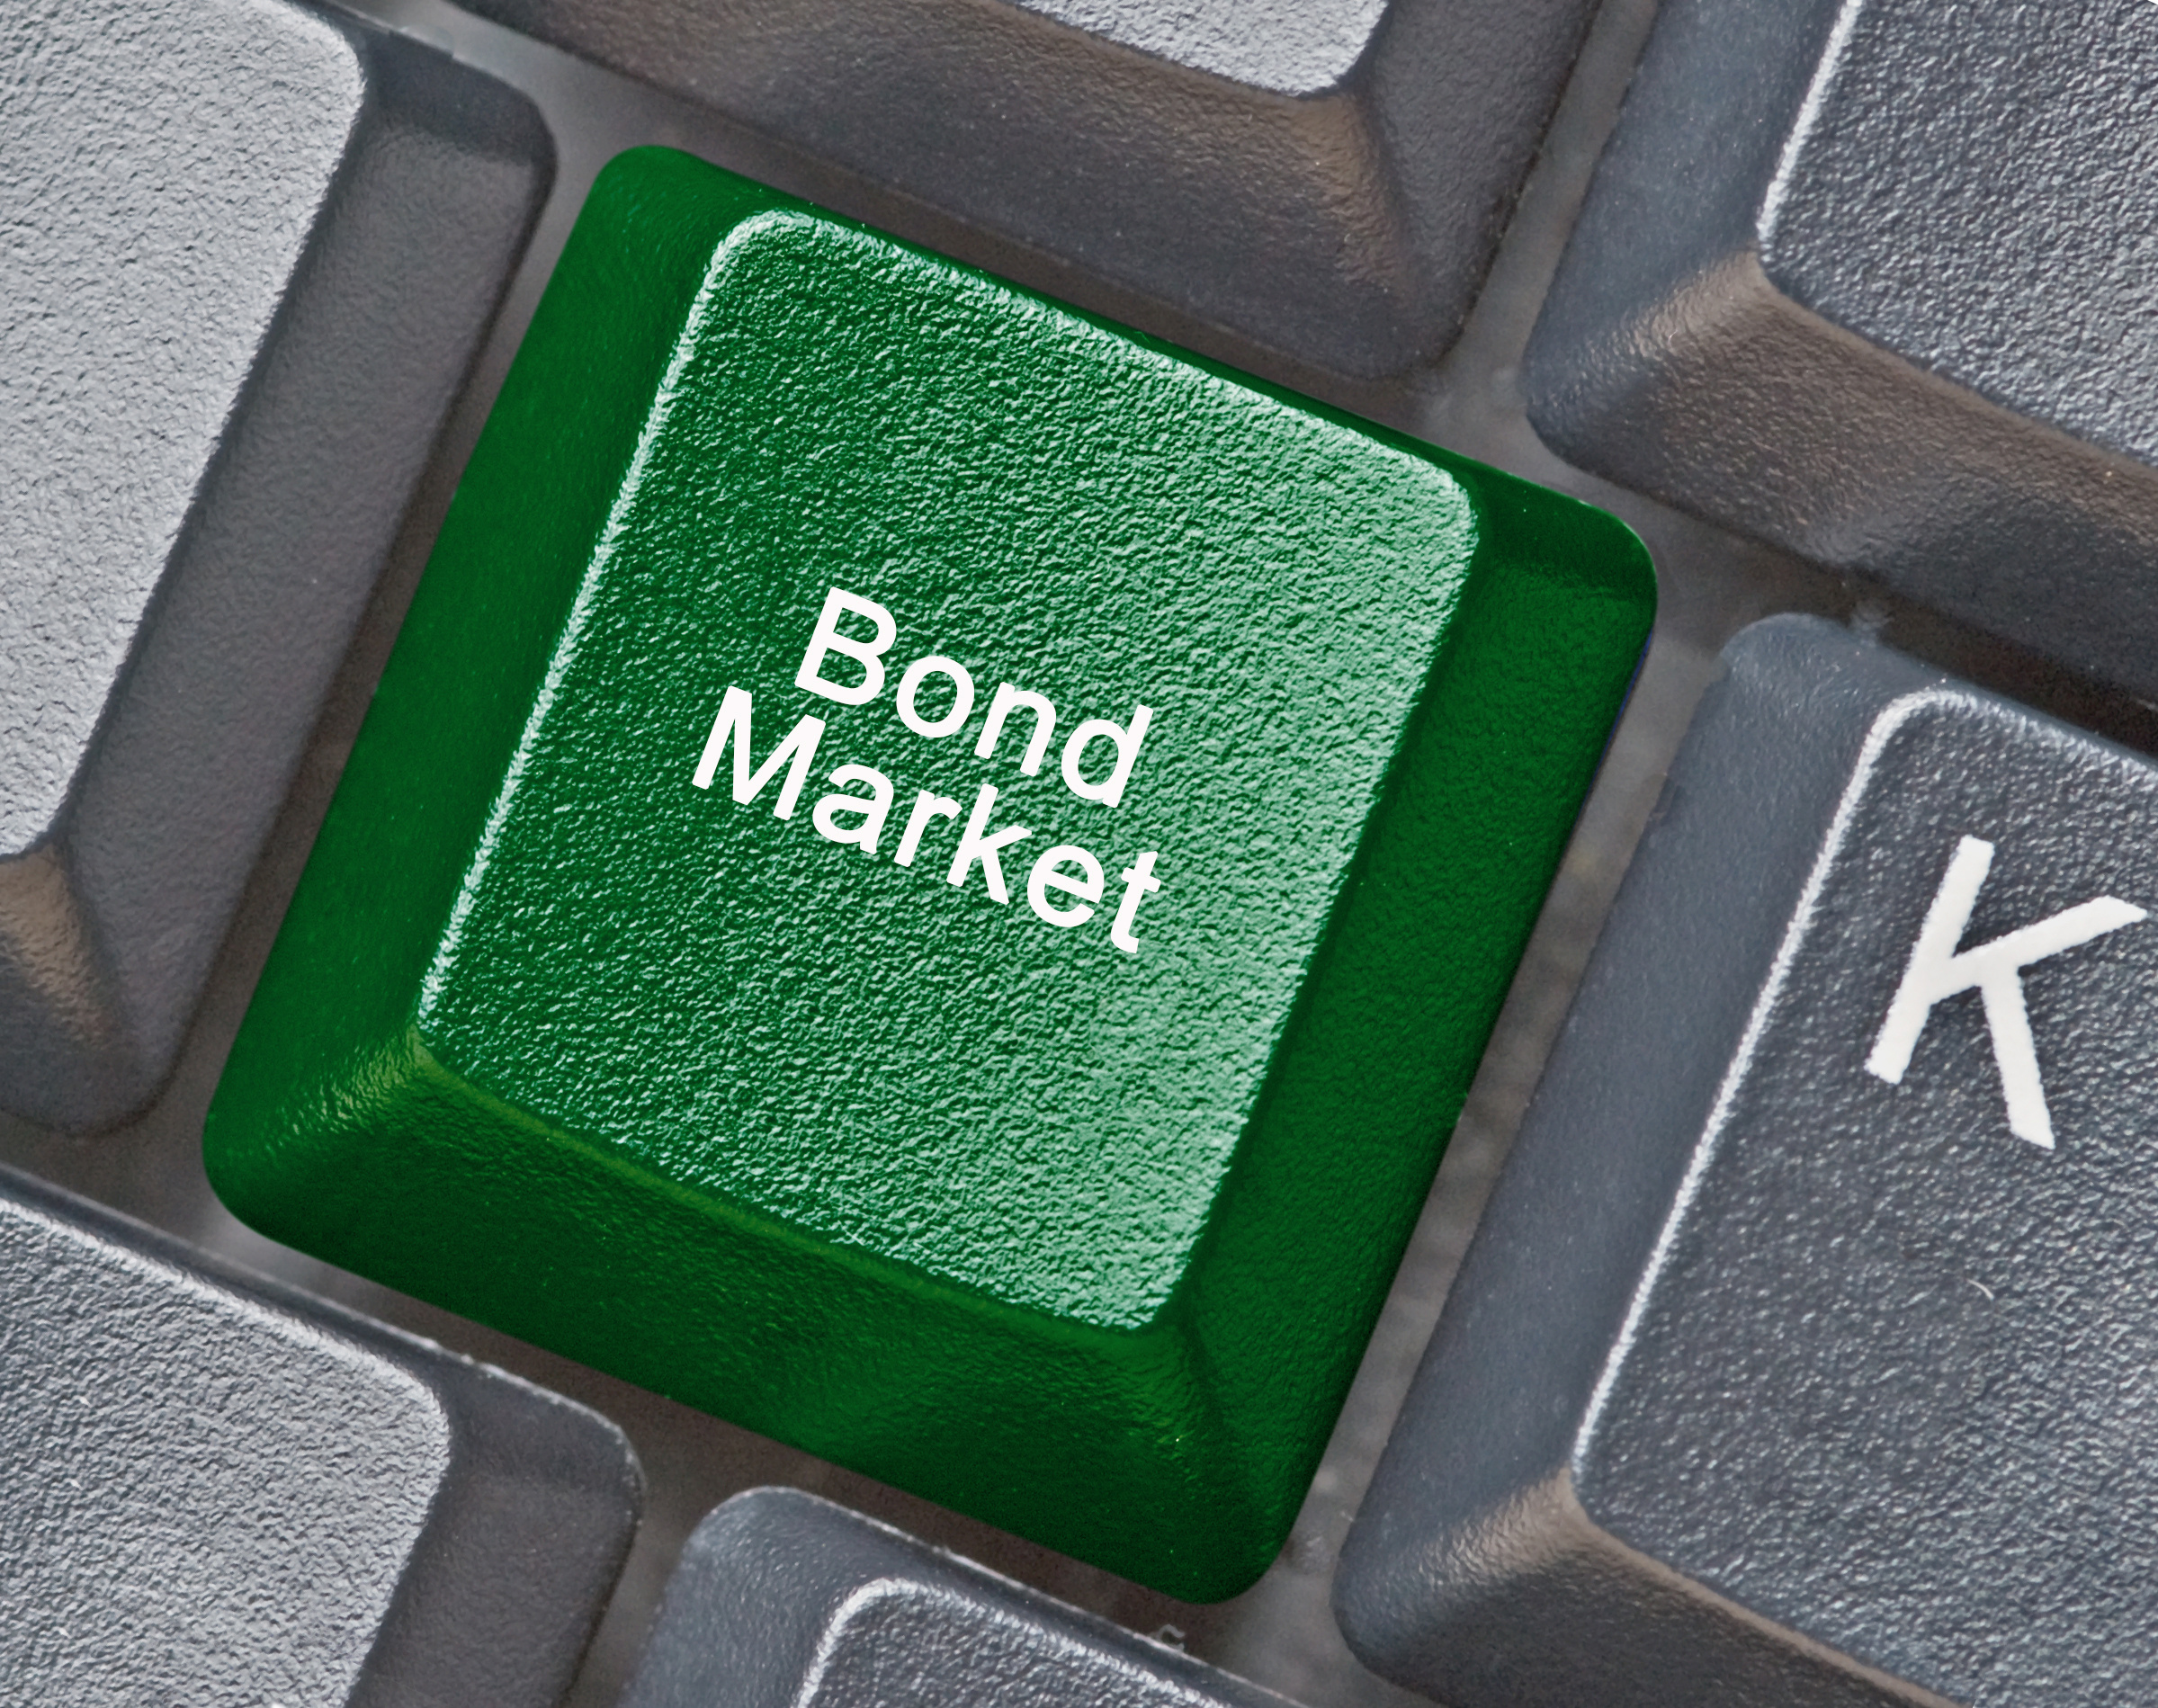 A Pandemic-Driven Surge in Social Bond Issuance Shows the Sustainable Debt Market is Evolving